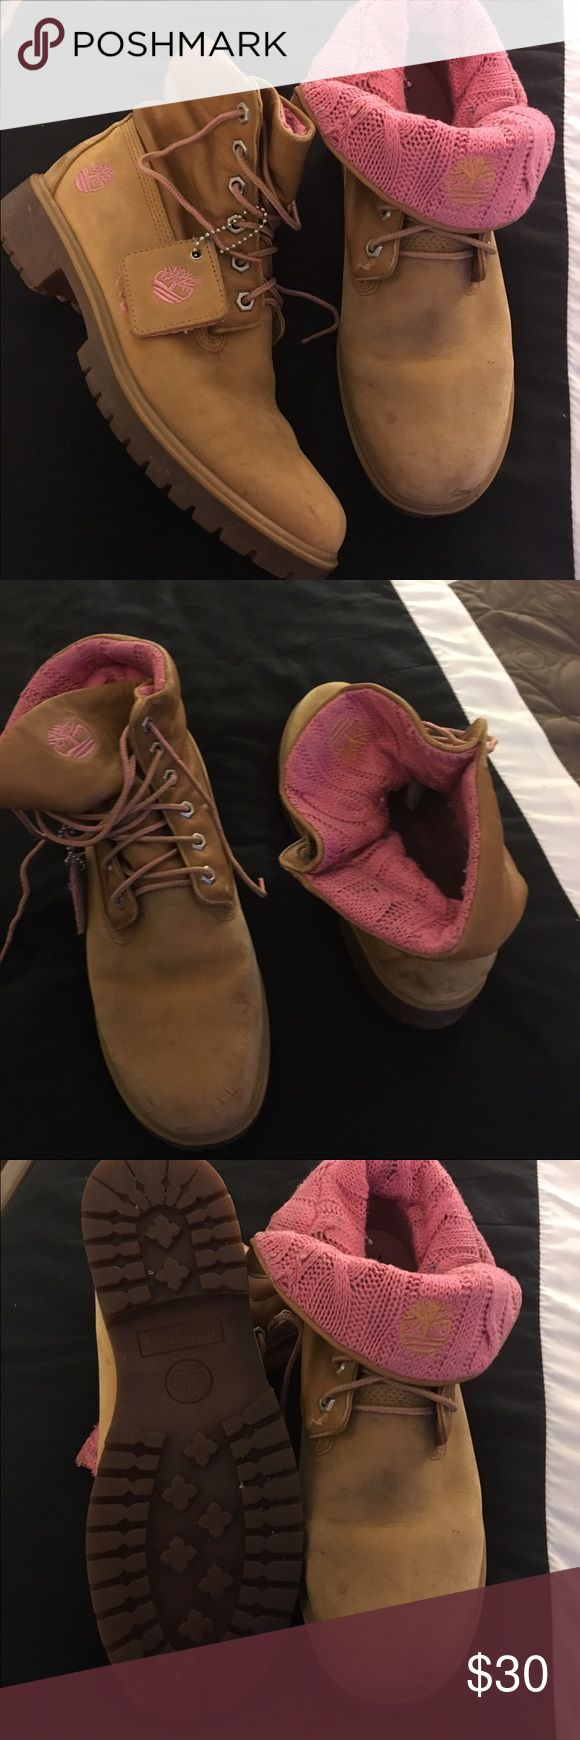 Timberland ❄️❄️❄️❄️💝💝 Beautiful timberland boots a little dirty but in perfect condition❄️❄️❄️❄️ Timberland Shoes Winter & Rain Boots